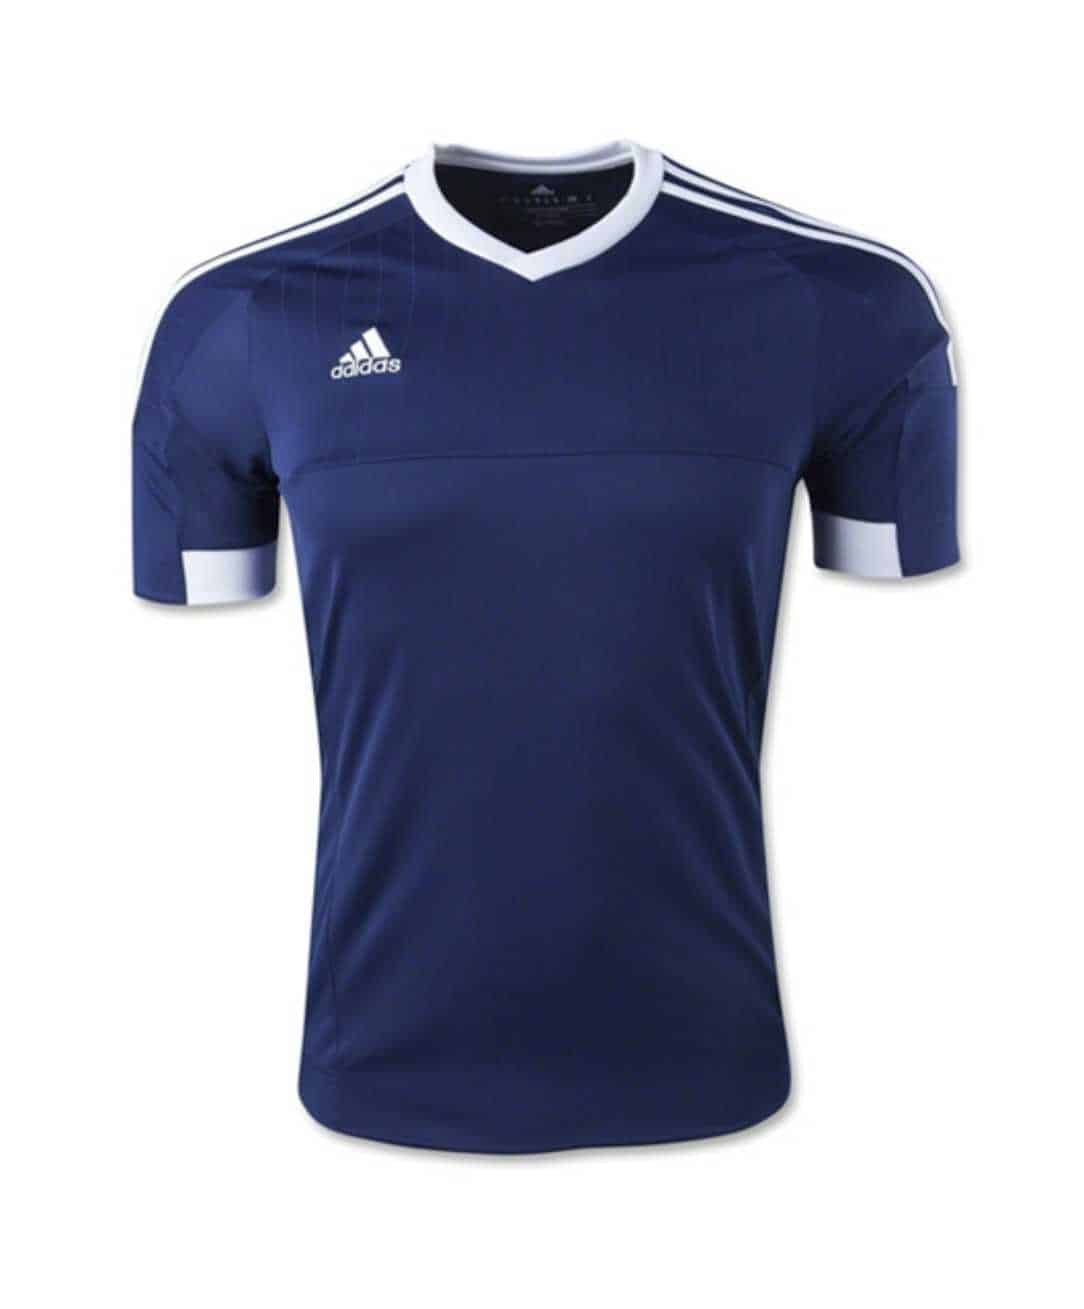 team youth adidas soccer jersey